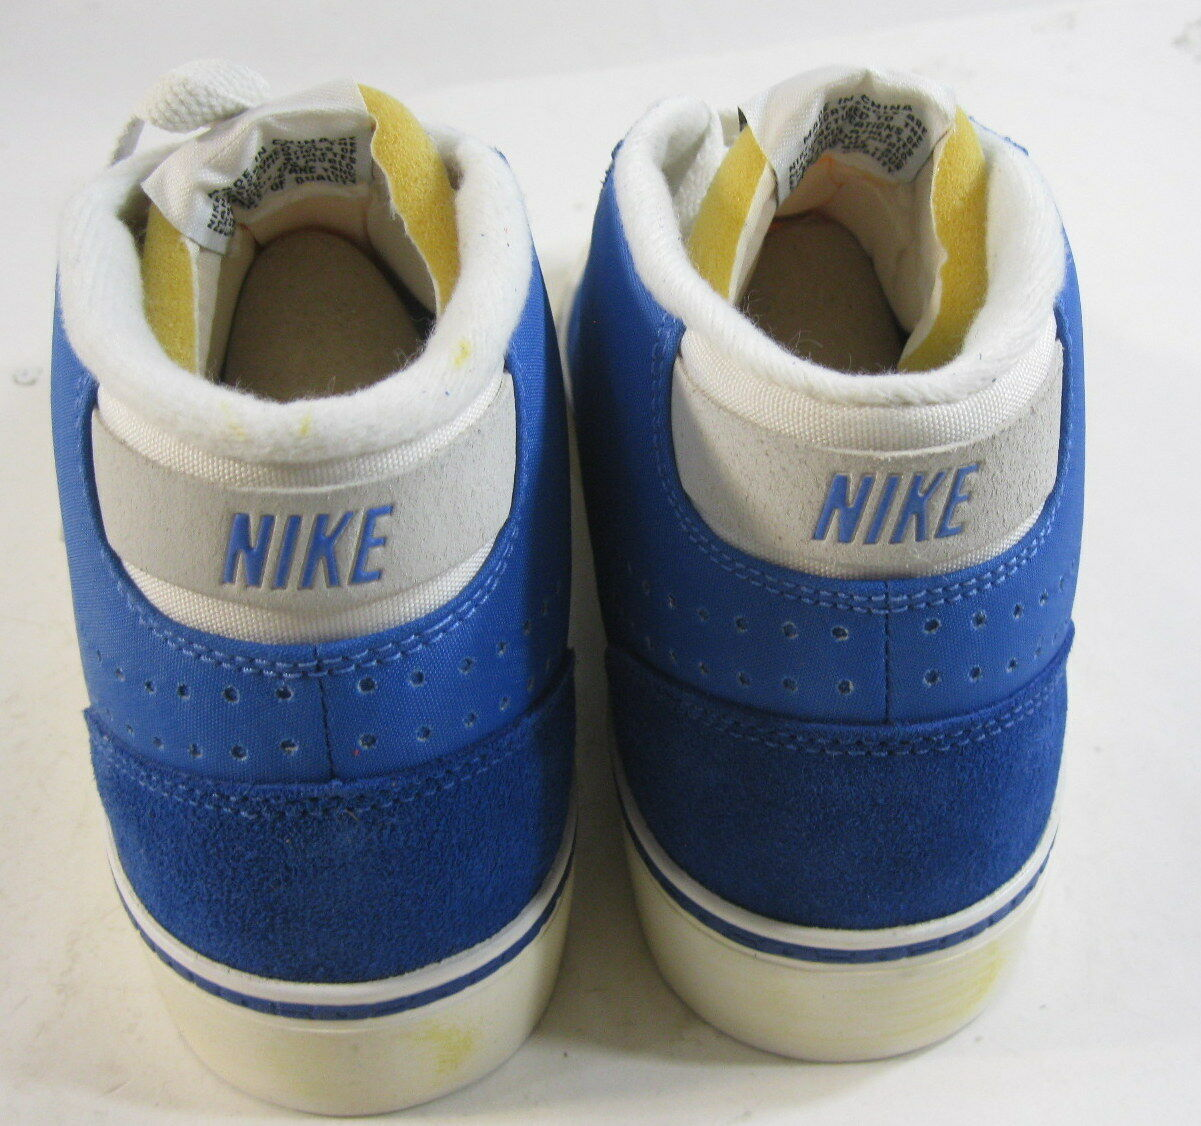 New 457059 Shoes 440 Nike Hachi Nd Qs Blue Uomo Shoes 457059 Athletic Size 8.5 3ebd8e